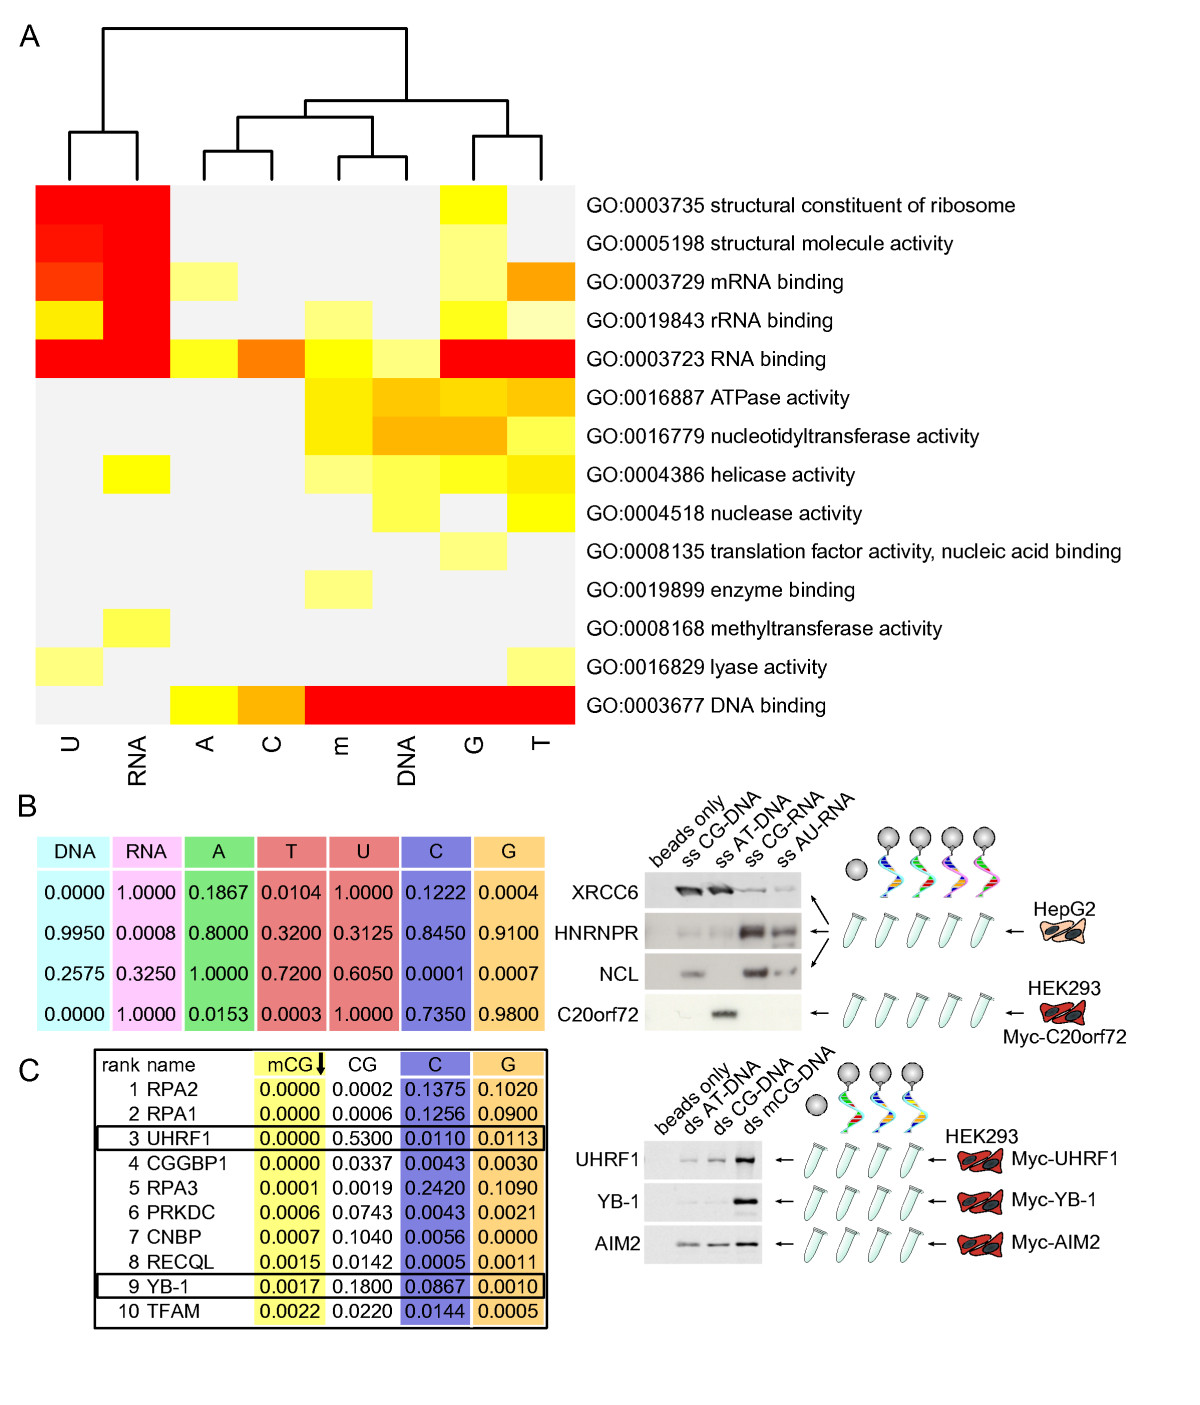 https://static-content.springer.com/image/art%3A10.1186%2Fgb-2013-14-7-r81/MediaObjects/13059_2013_Article_3125_Fig4_HTML.jpg